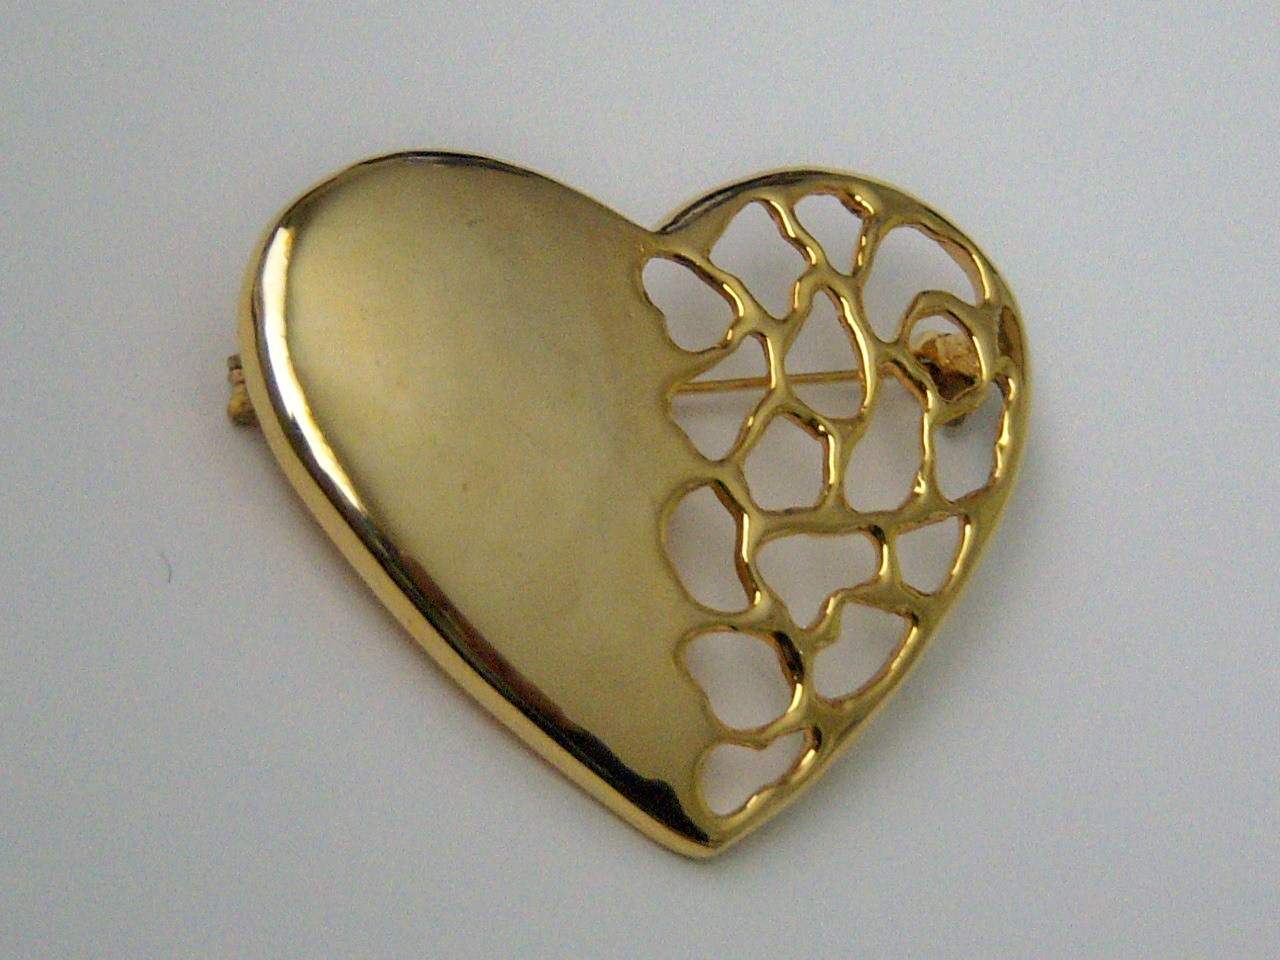 Large Heart Pin In Open Design. Gold Tone Mesh Heart Pin.